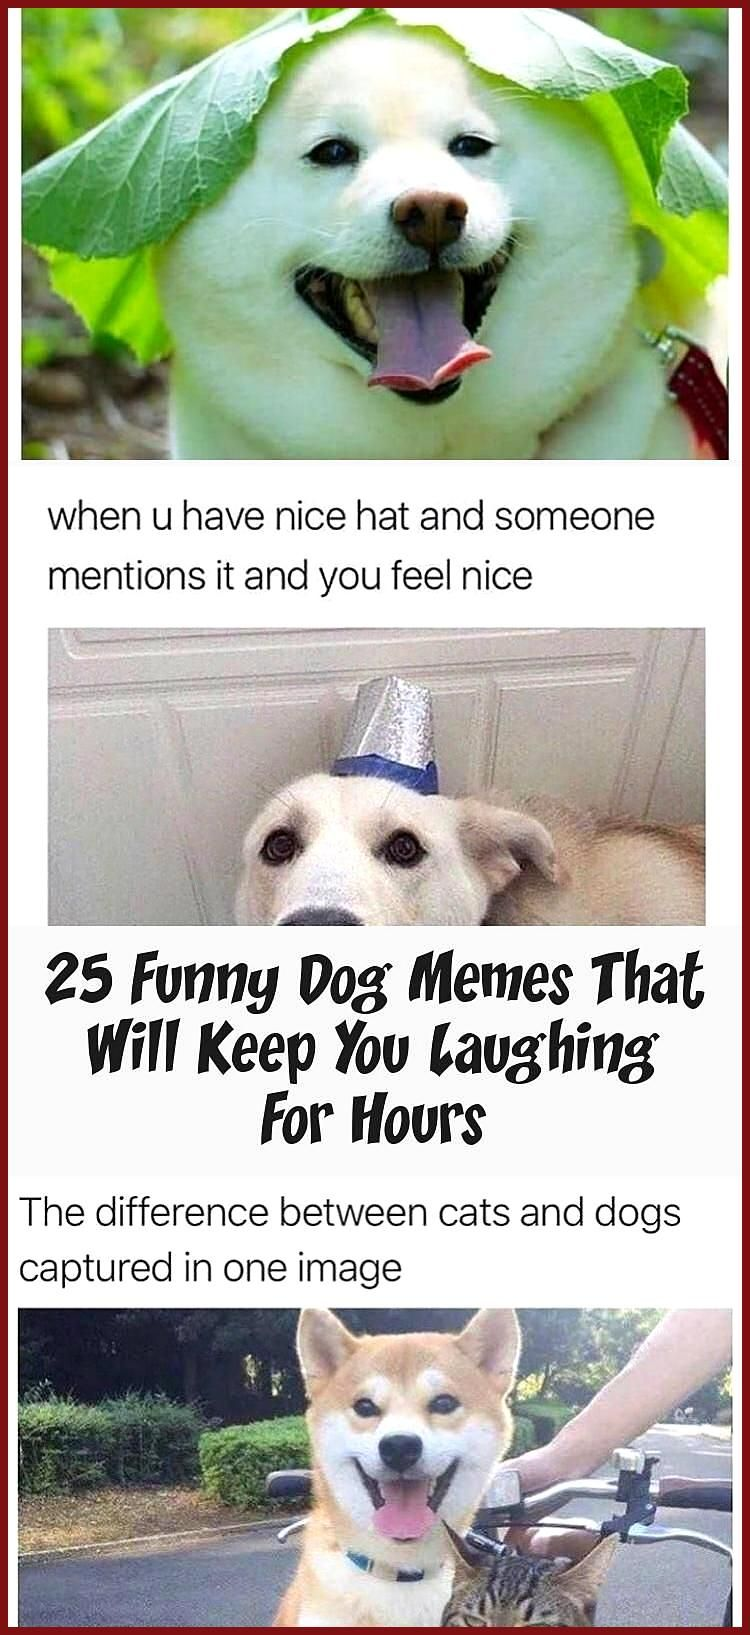 25 Funny Dog Memes That Will Keep You Laughing For Hours The Best Dog Memes Of 2019 By Small Animals Enjoy The Funny Dogs Funny Dog Memes Dog Memes Funny Dogs